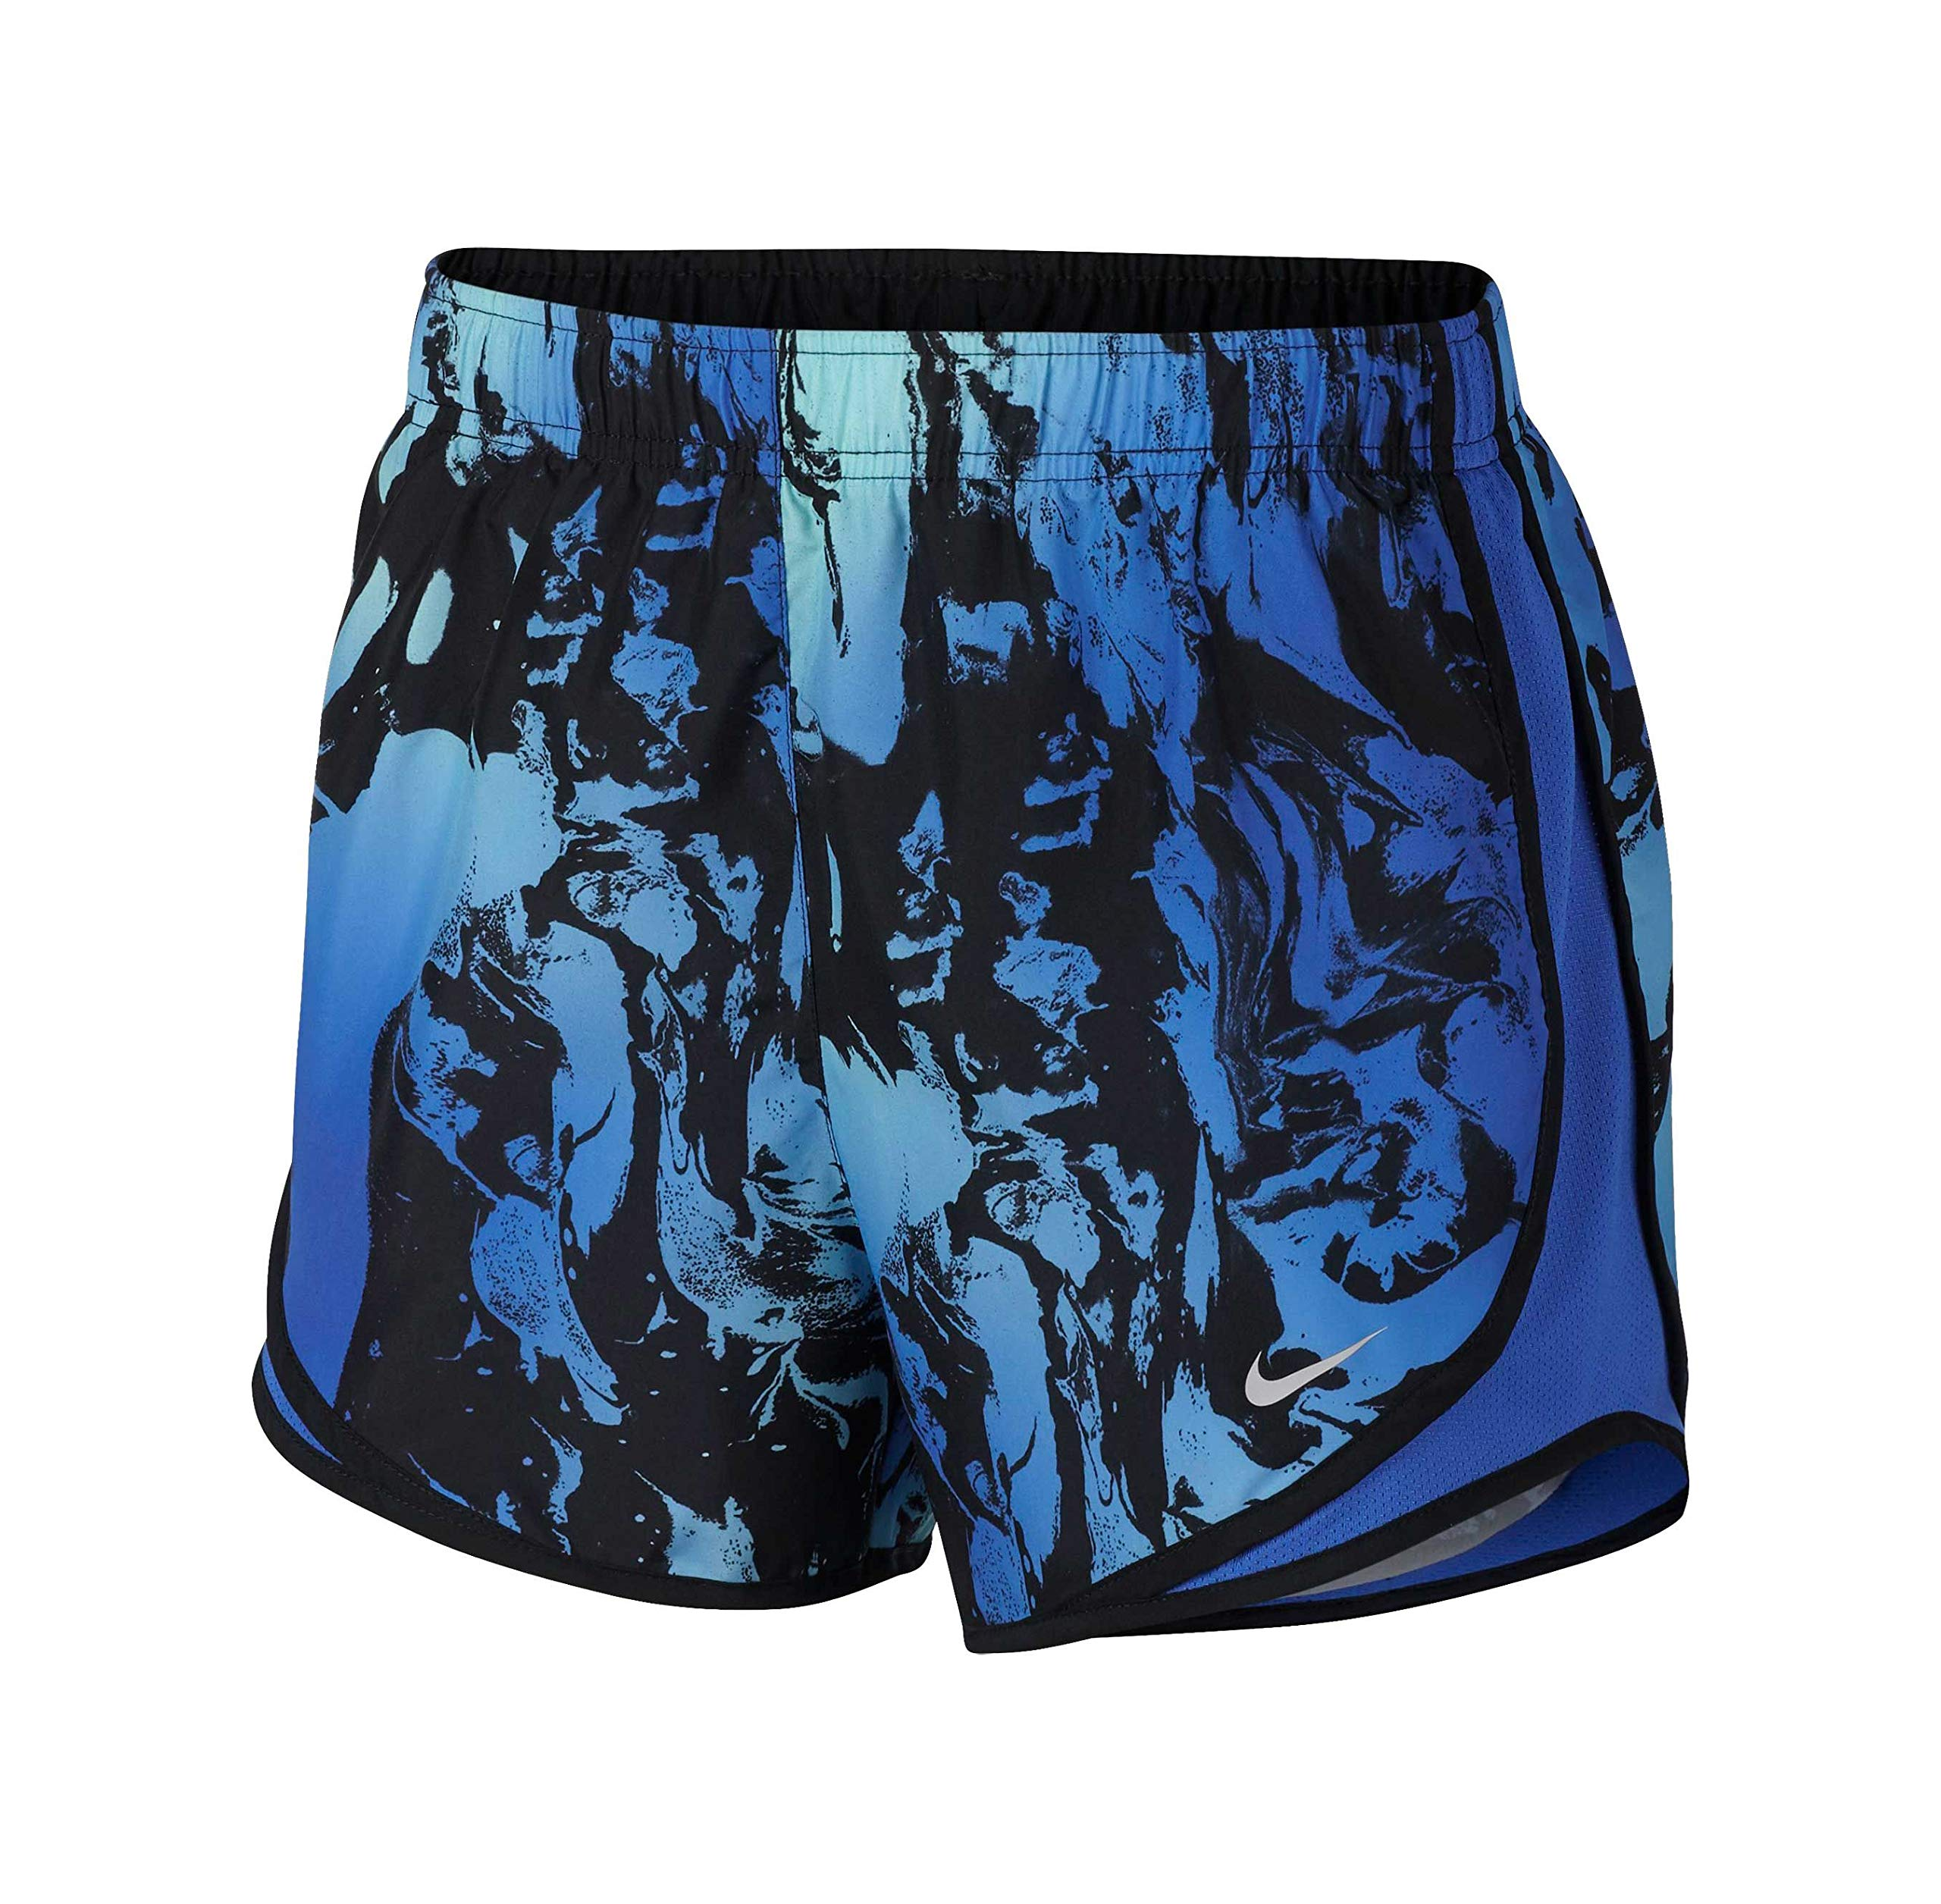 6707a3528f80f Galleon - NIKE Women's Dry Tempo Short (X-Large, Hyper Royal/Lime/Print)